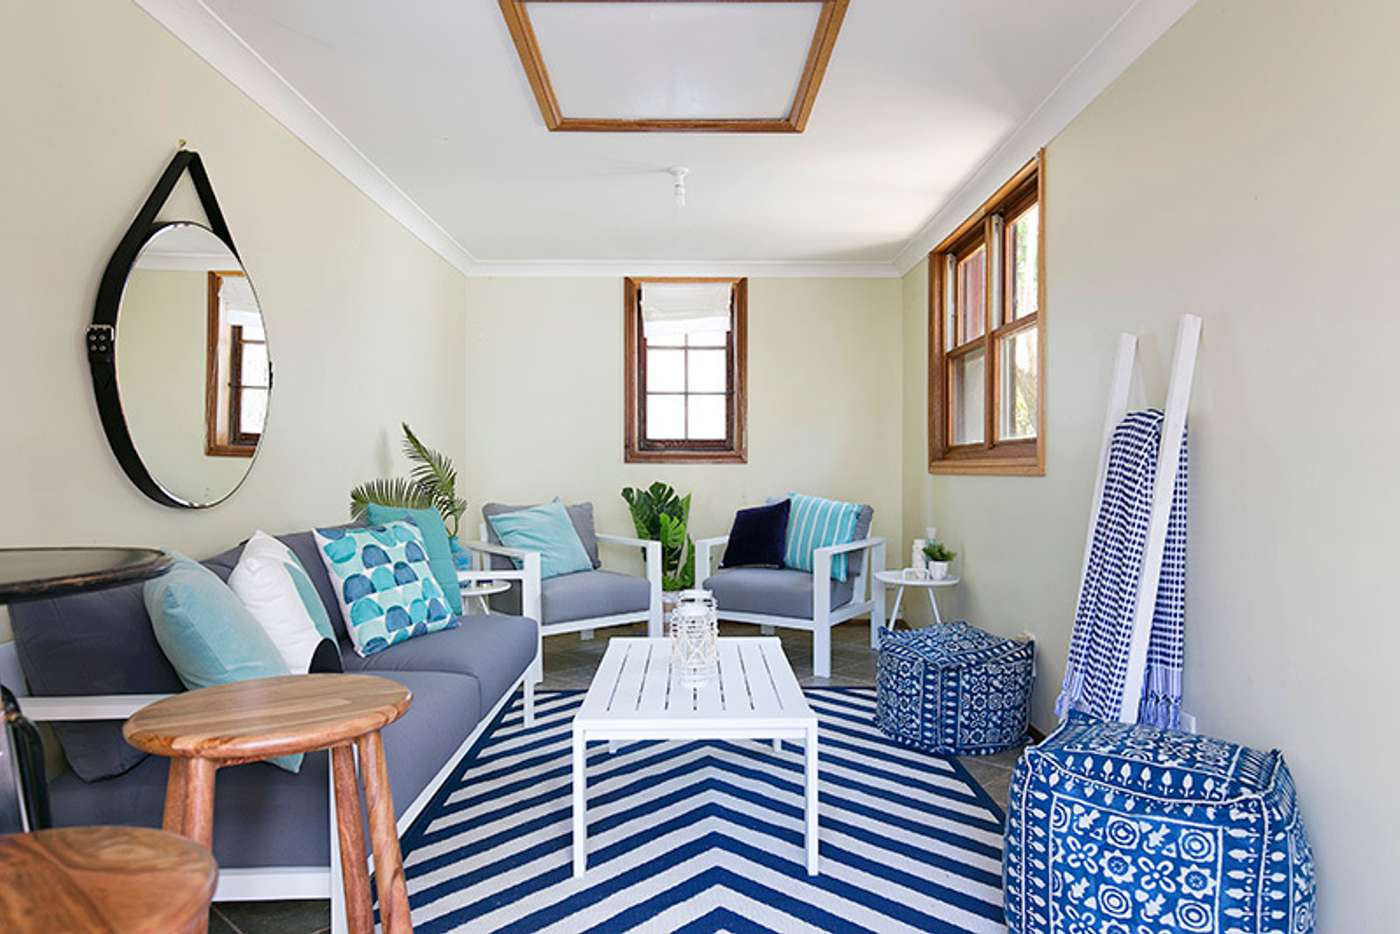 Fifth view of Homely house listing, 10 Daintrey Street, Fairlight NSW 2094